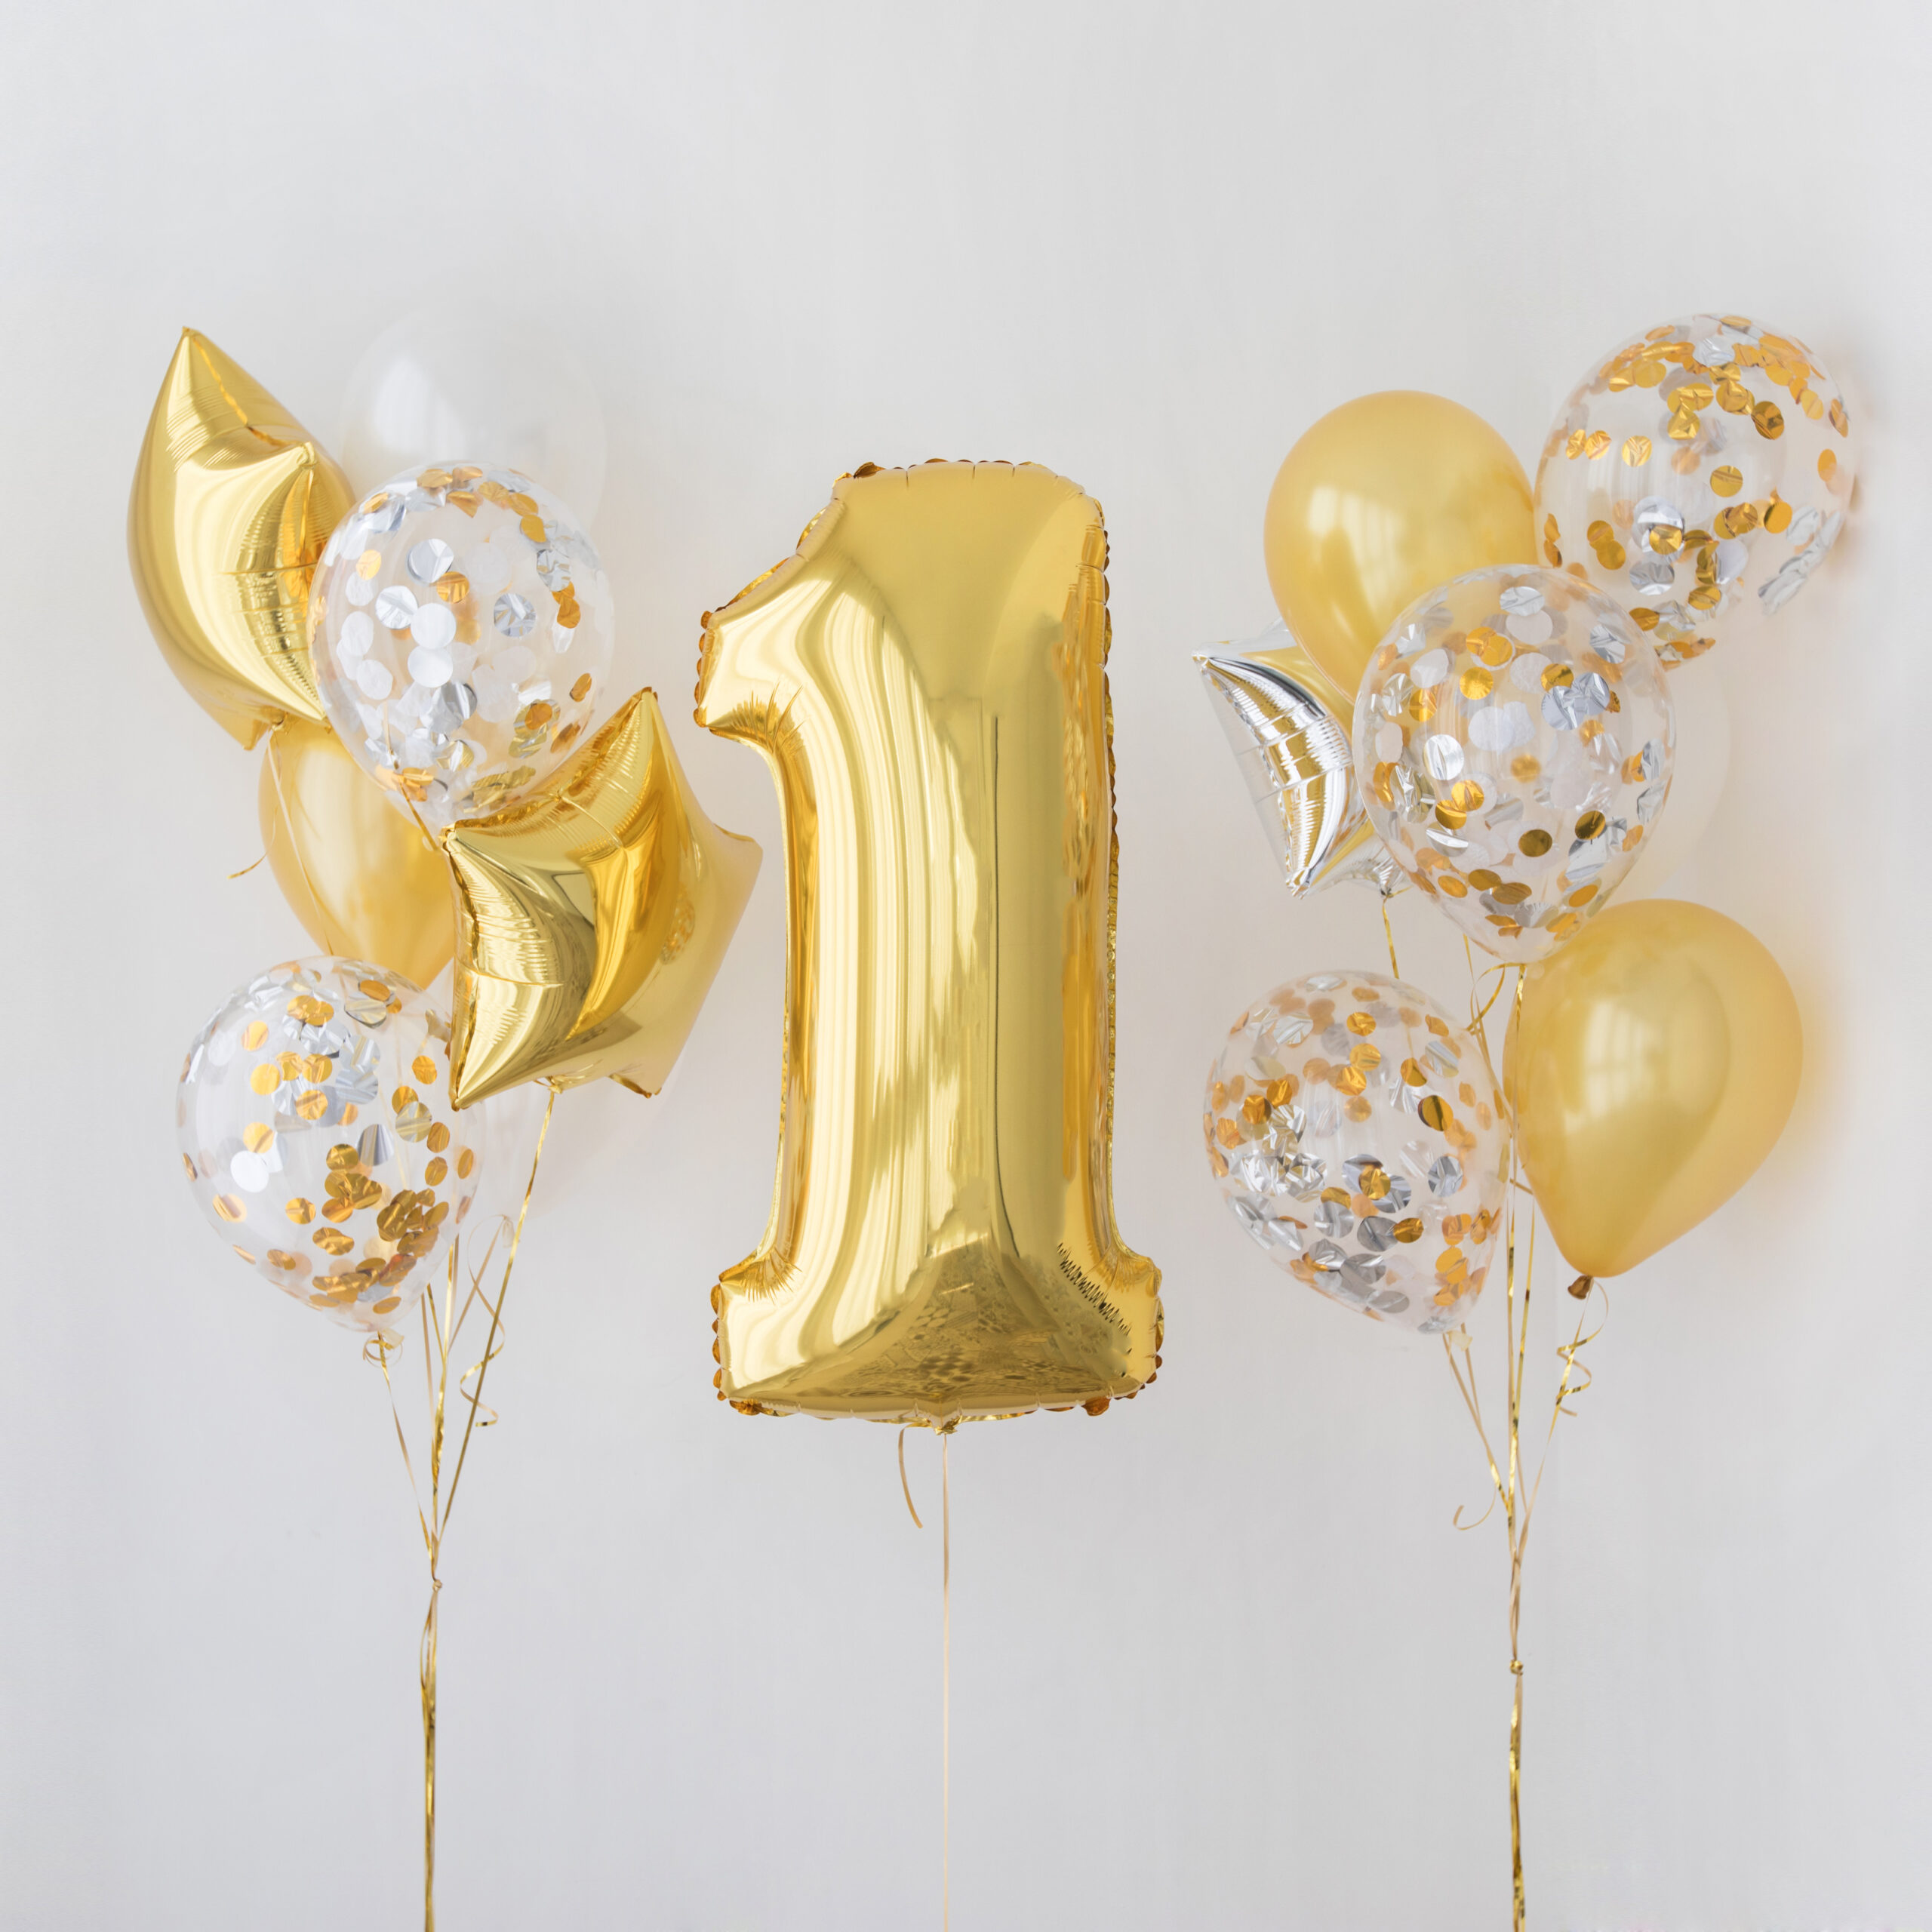 Helium Number Balloons Delivered